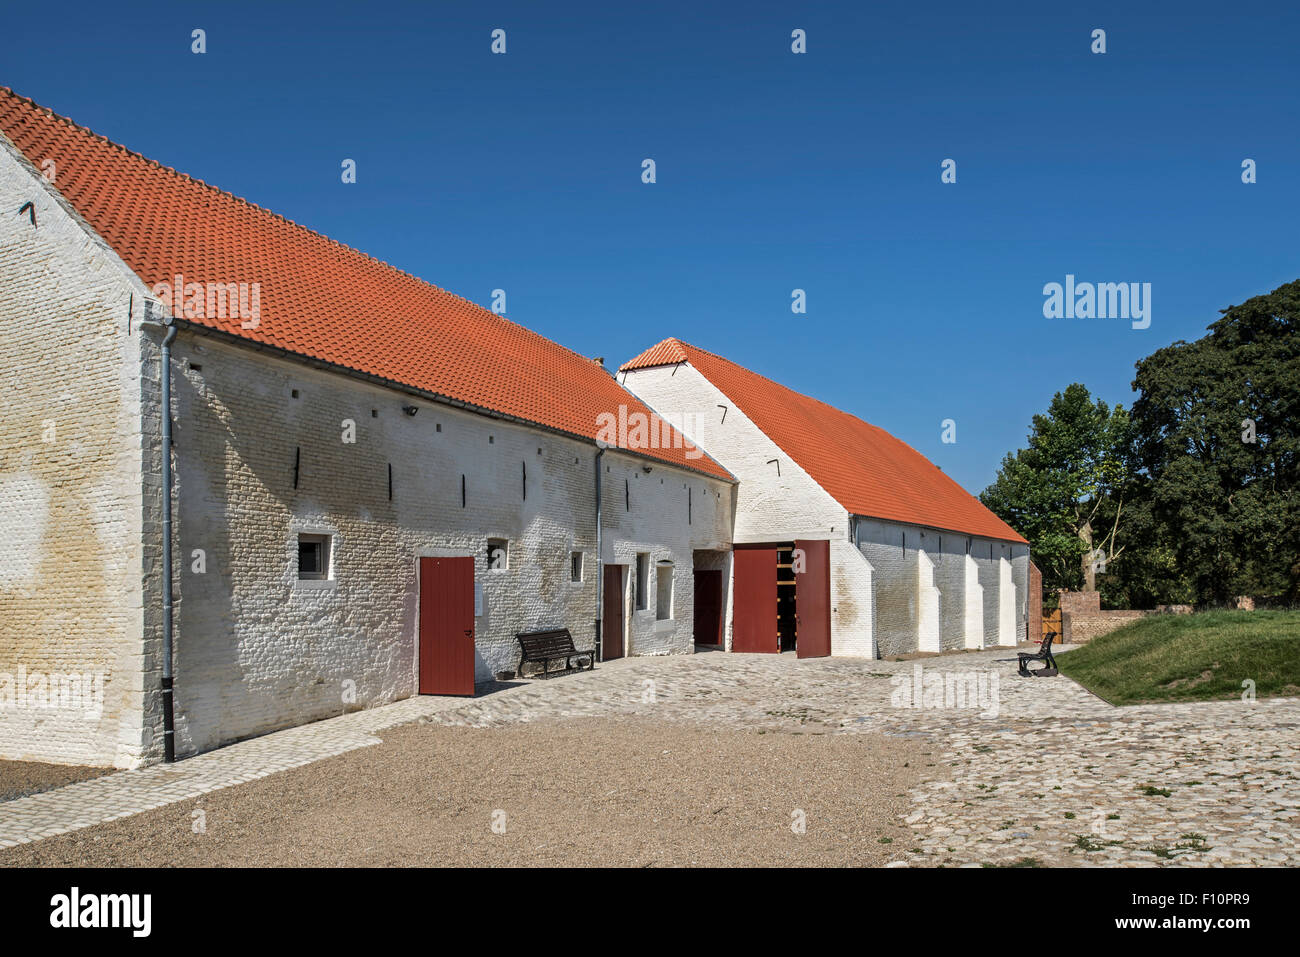 Courtyard showing barns of Château de Hougoumont, where British soldiers faced Napoleon's Army at Waterloo - Stock Image